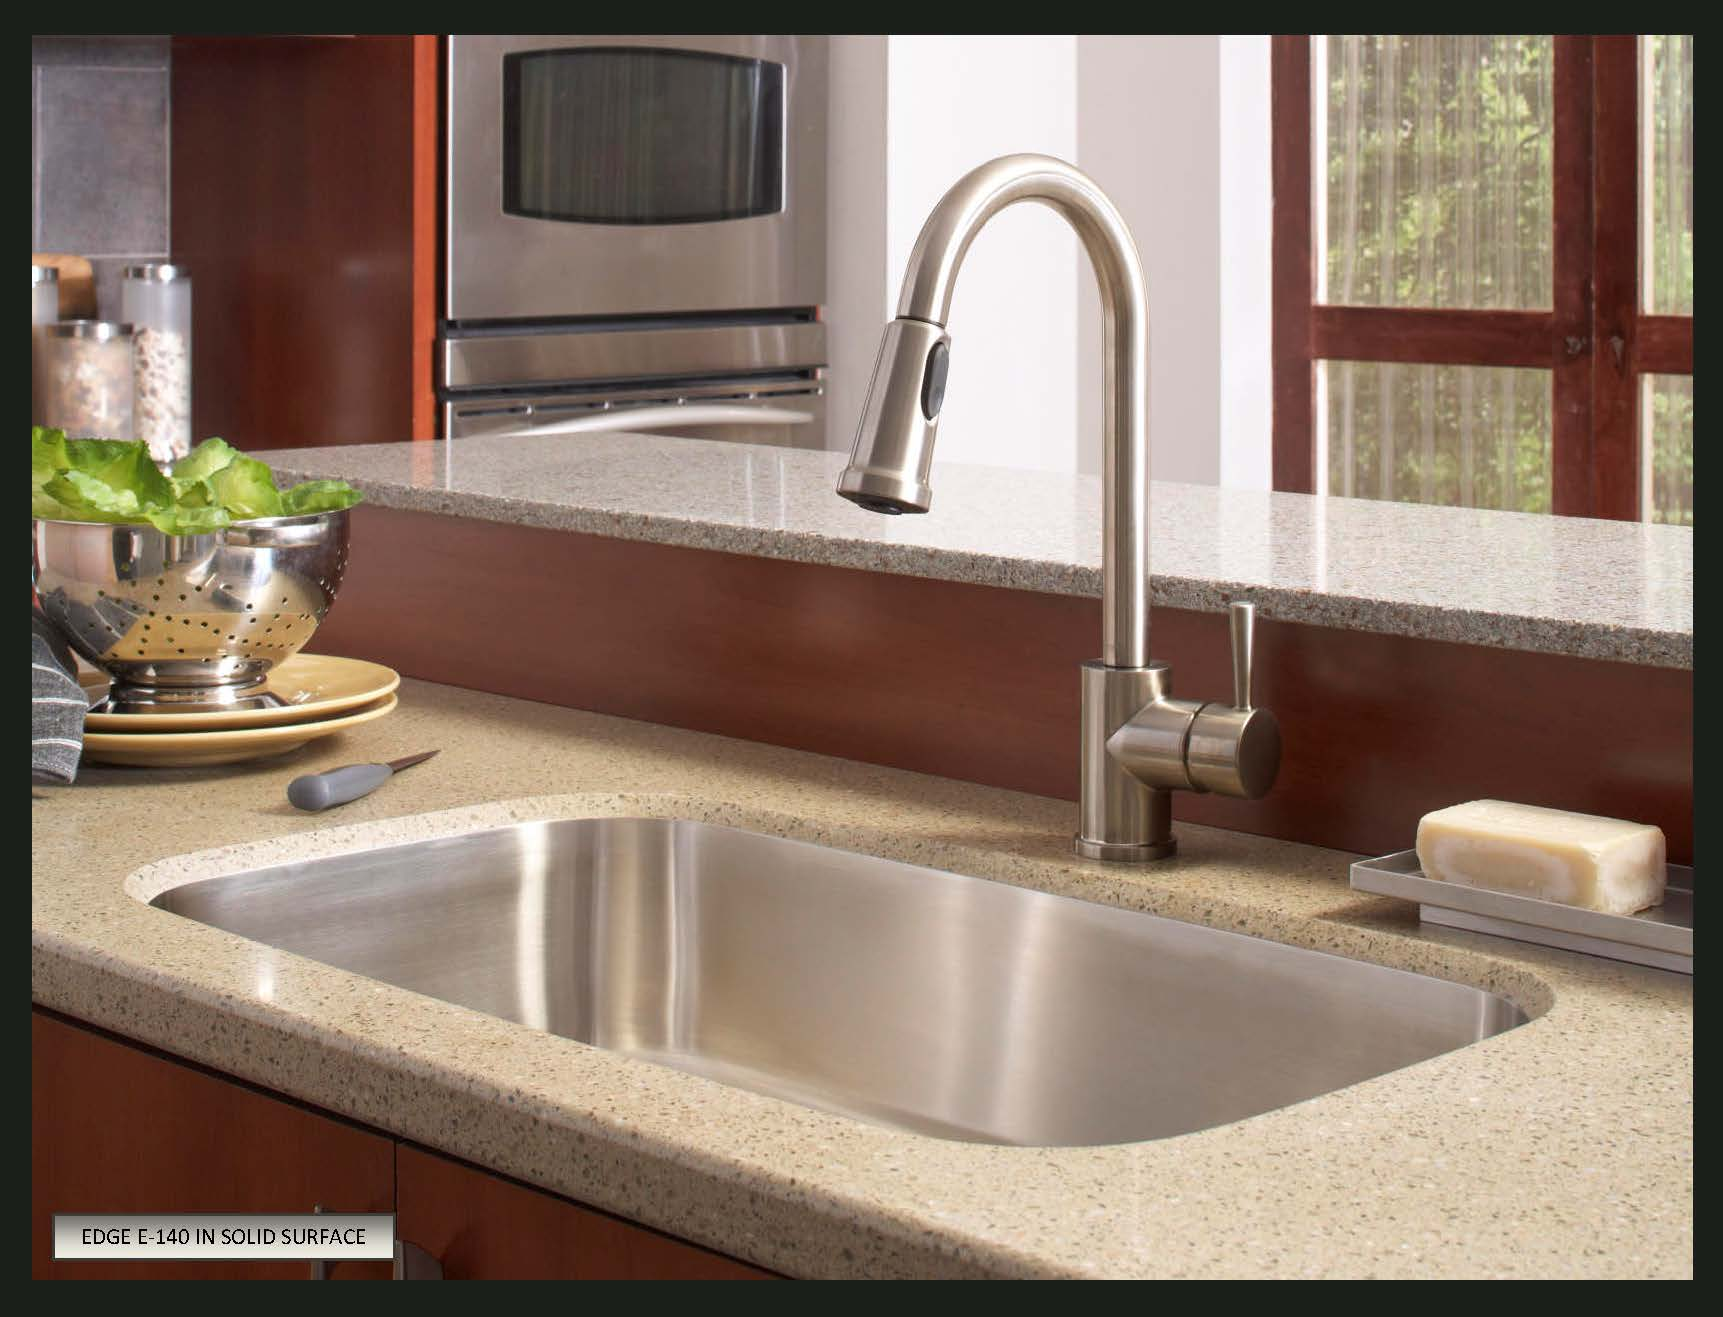 choose sink solid surface countertops stainless steel kitchen sink Karran Undermount Stainless Steel Sinks